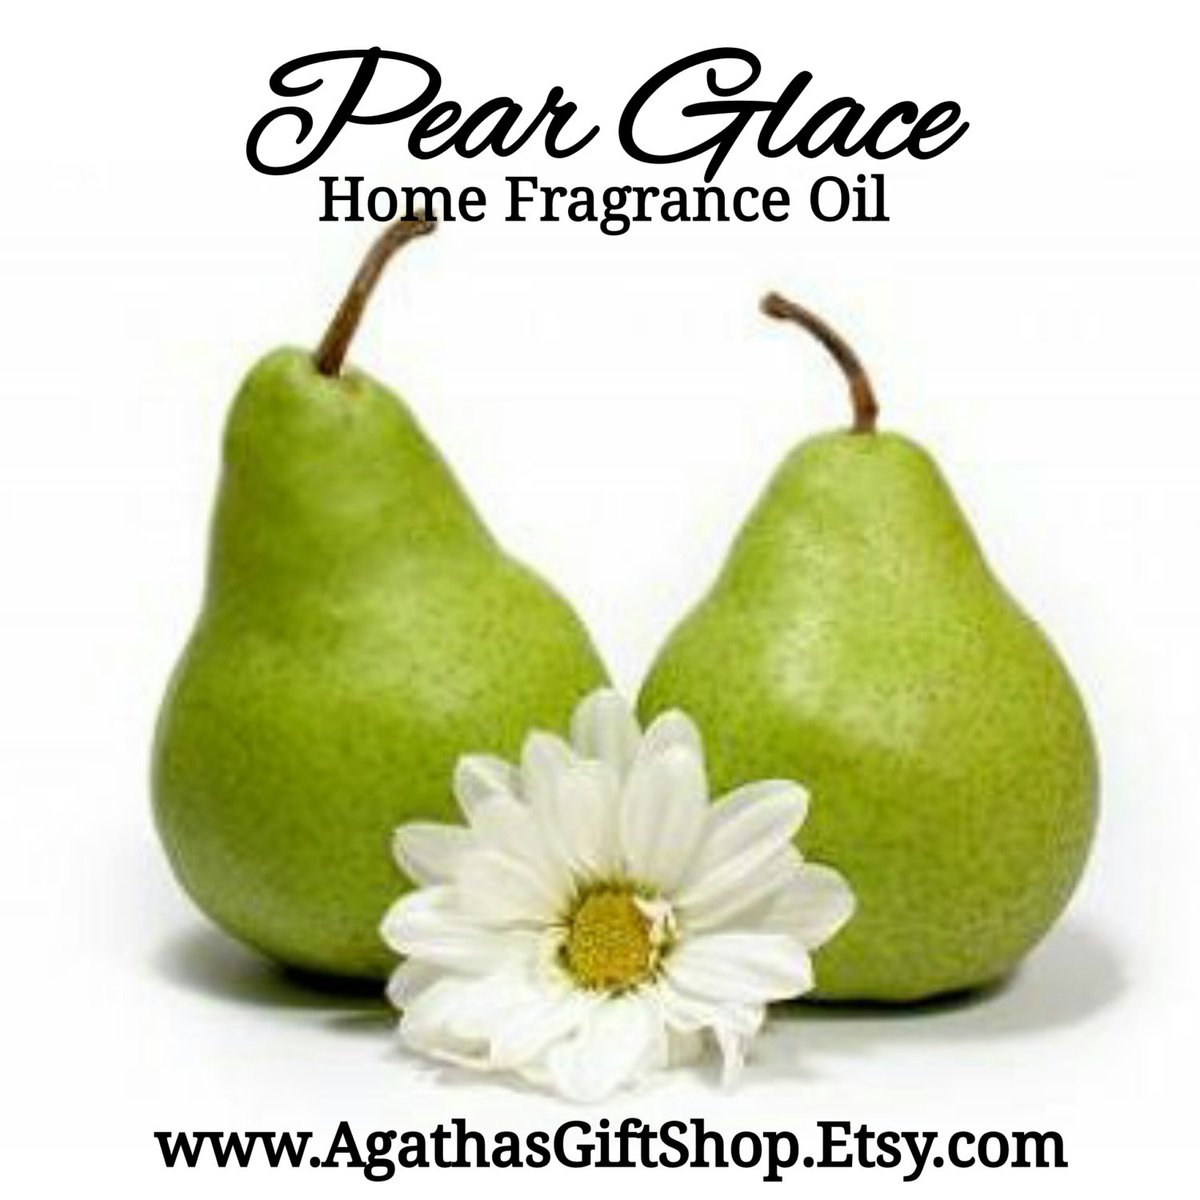 Pear Glace Home Fragrance Diffuser Warmer Aromatherapy Burning Oil  #Incense #GiftShopSale #PerfumeBodyOils #Etsy #AromatherapyOil #BlackFriday #Wedding #HerbalRemedies #HomeFragranceOil #CyberMonday #PearGlace